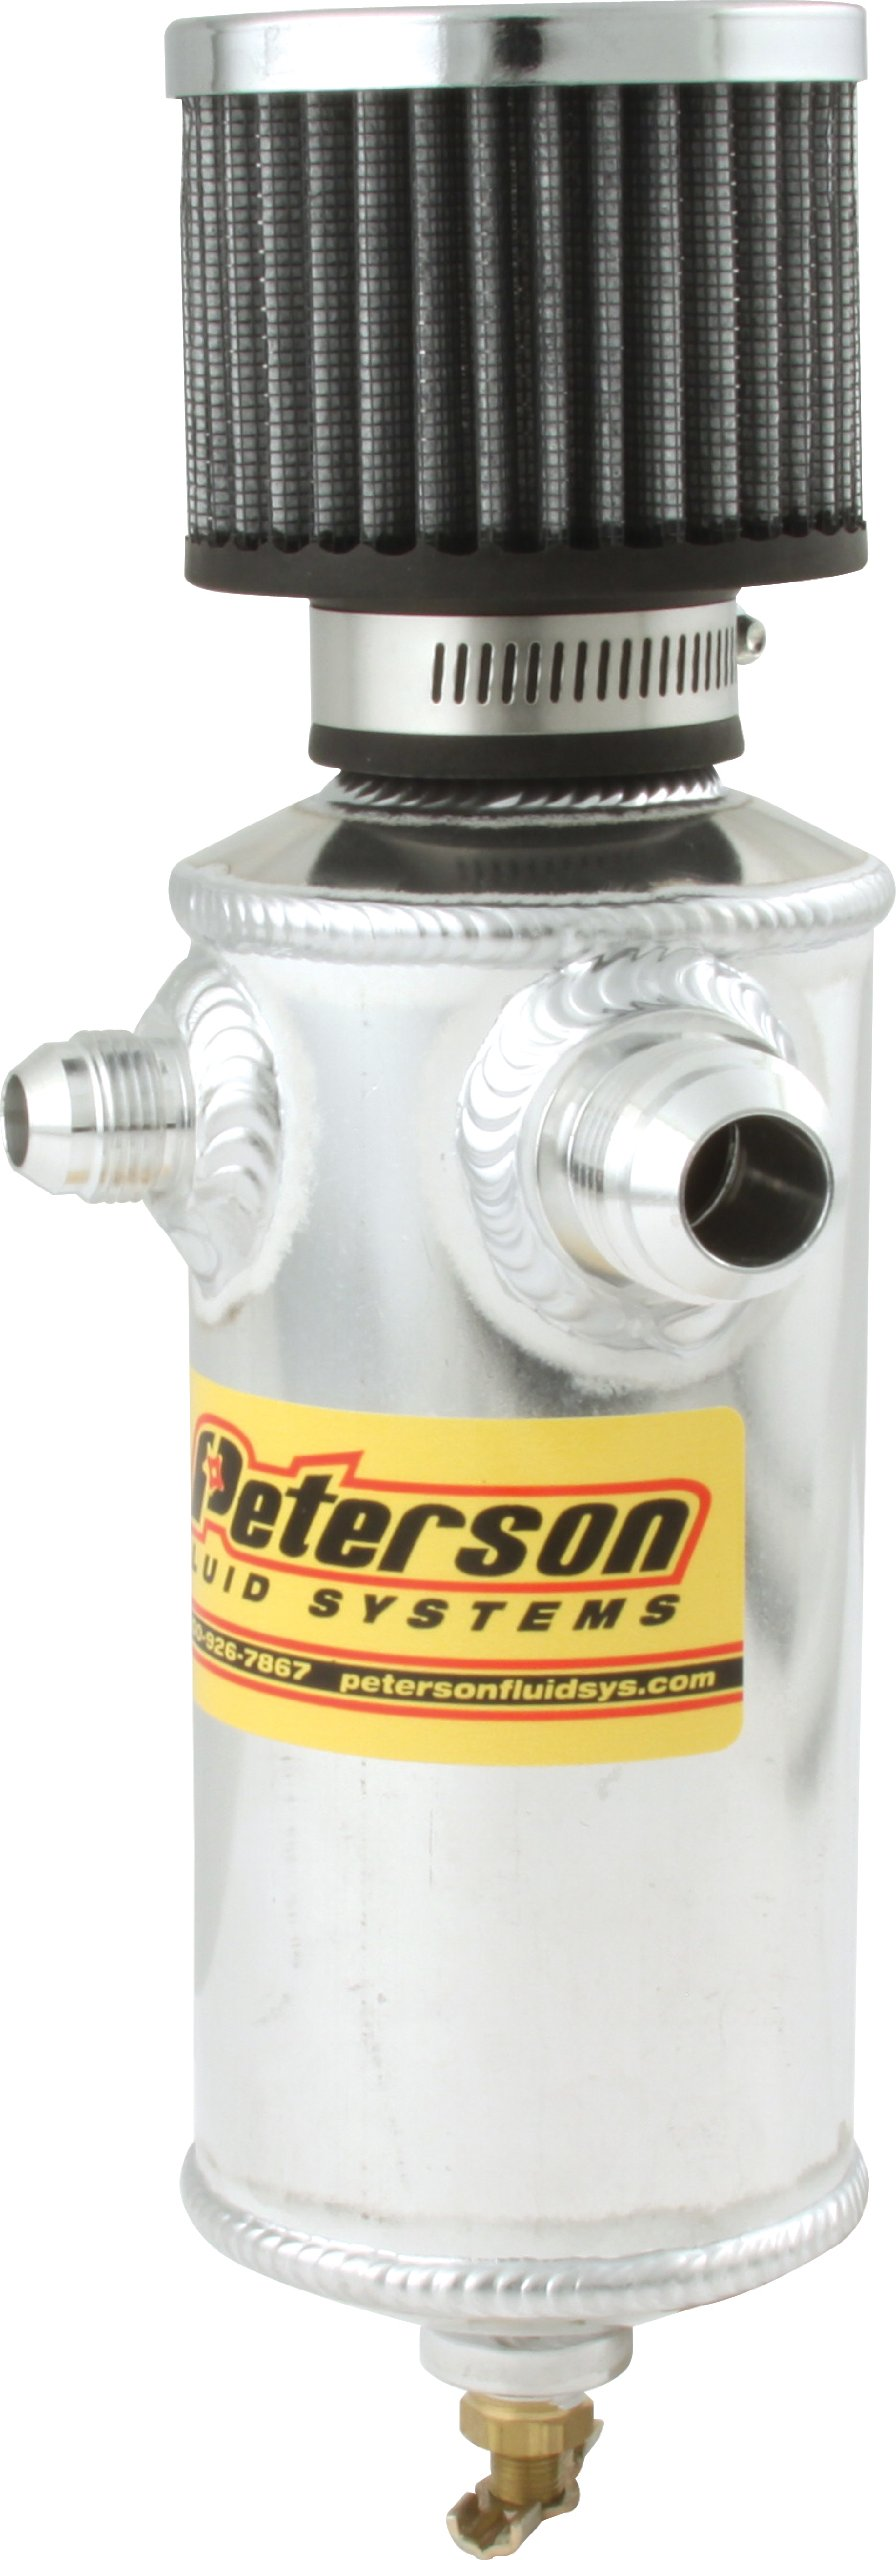 Peterson Fluid Systems 08-0410 Remote Breather Can with 2 Fittings